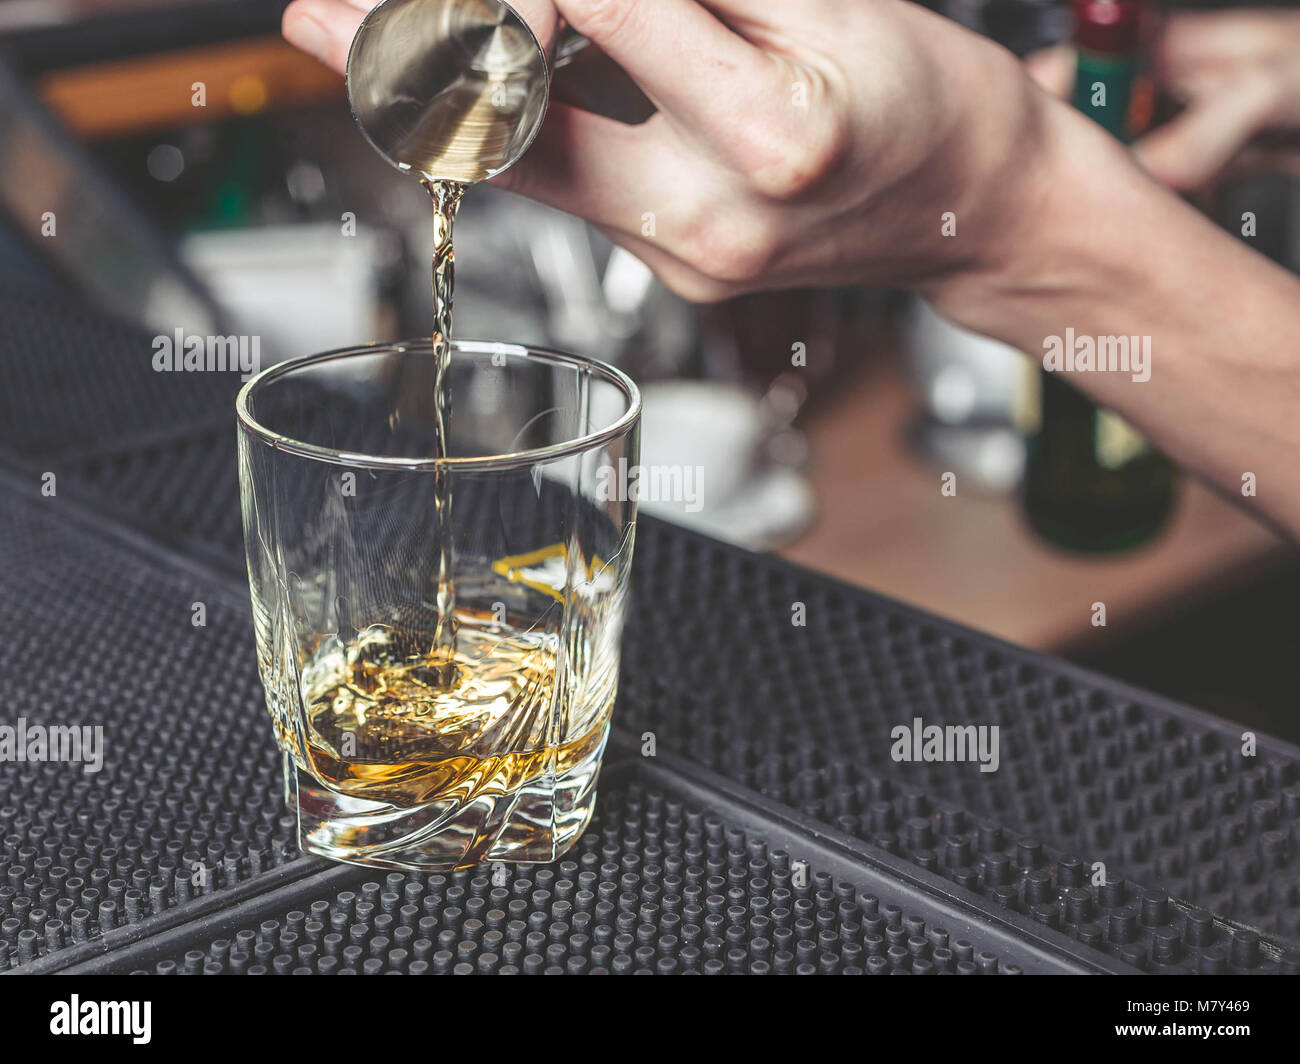 The barman pours whisky in a glass - Stock Image